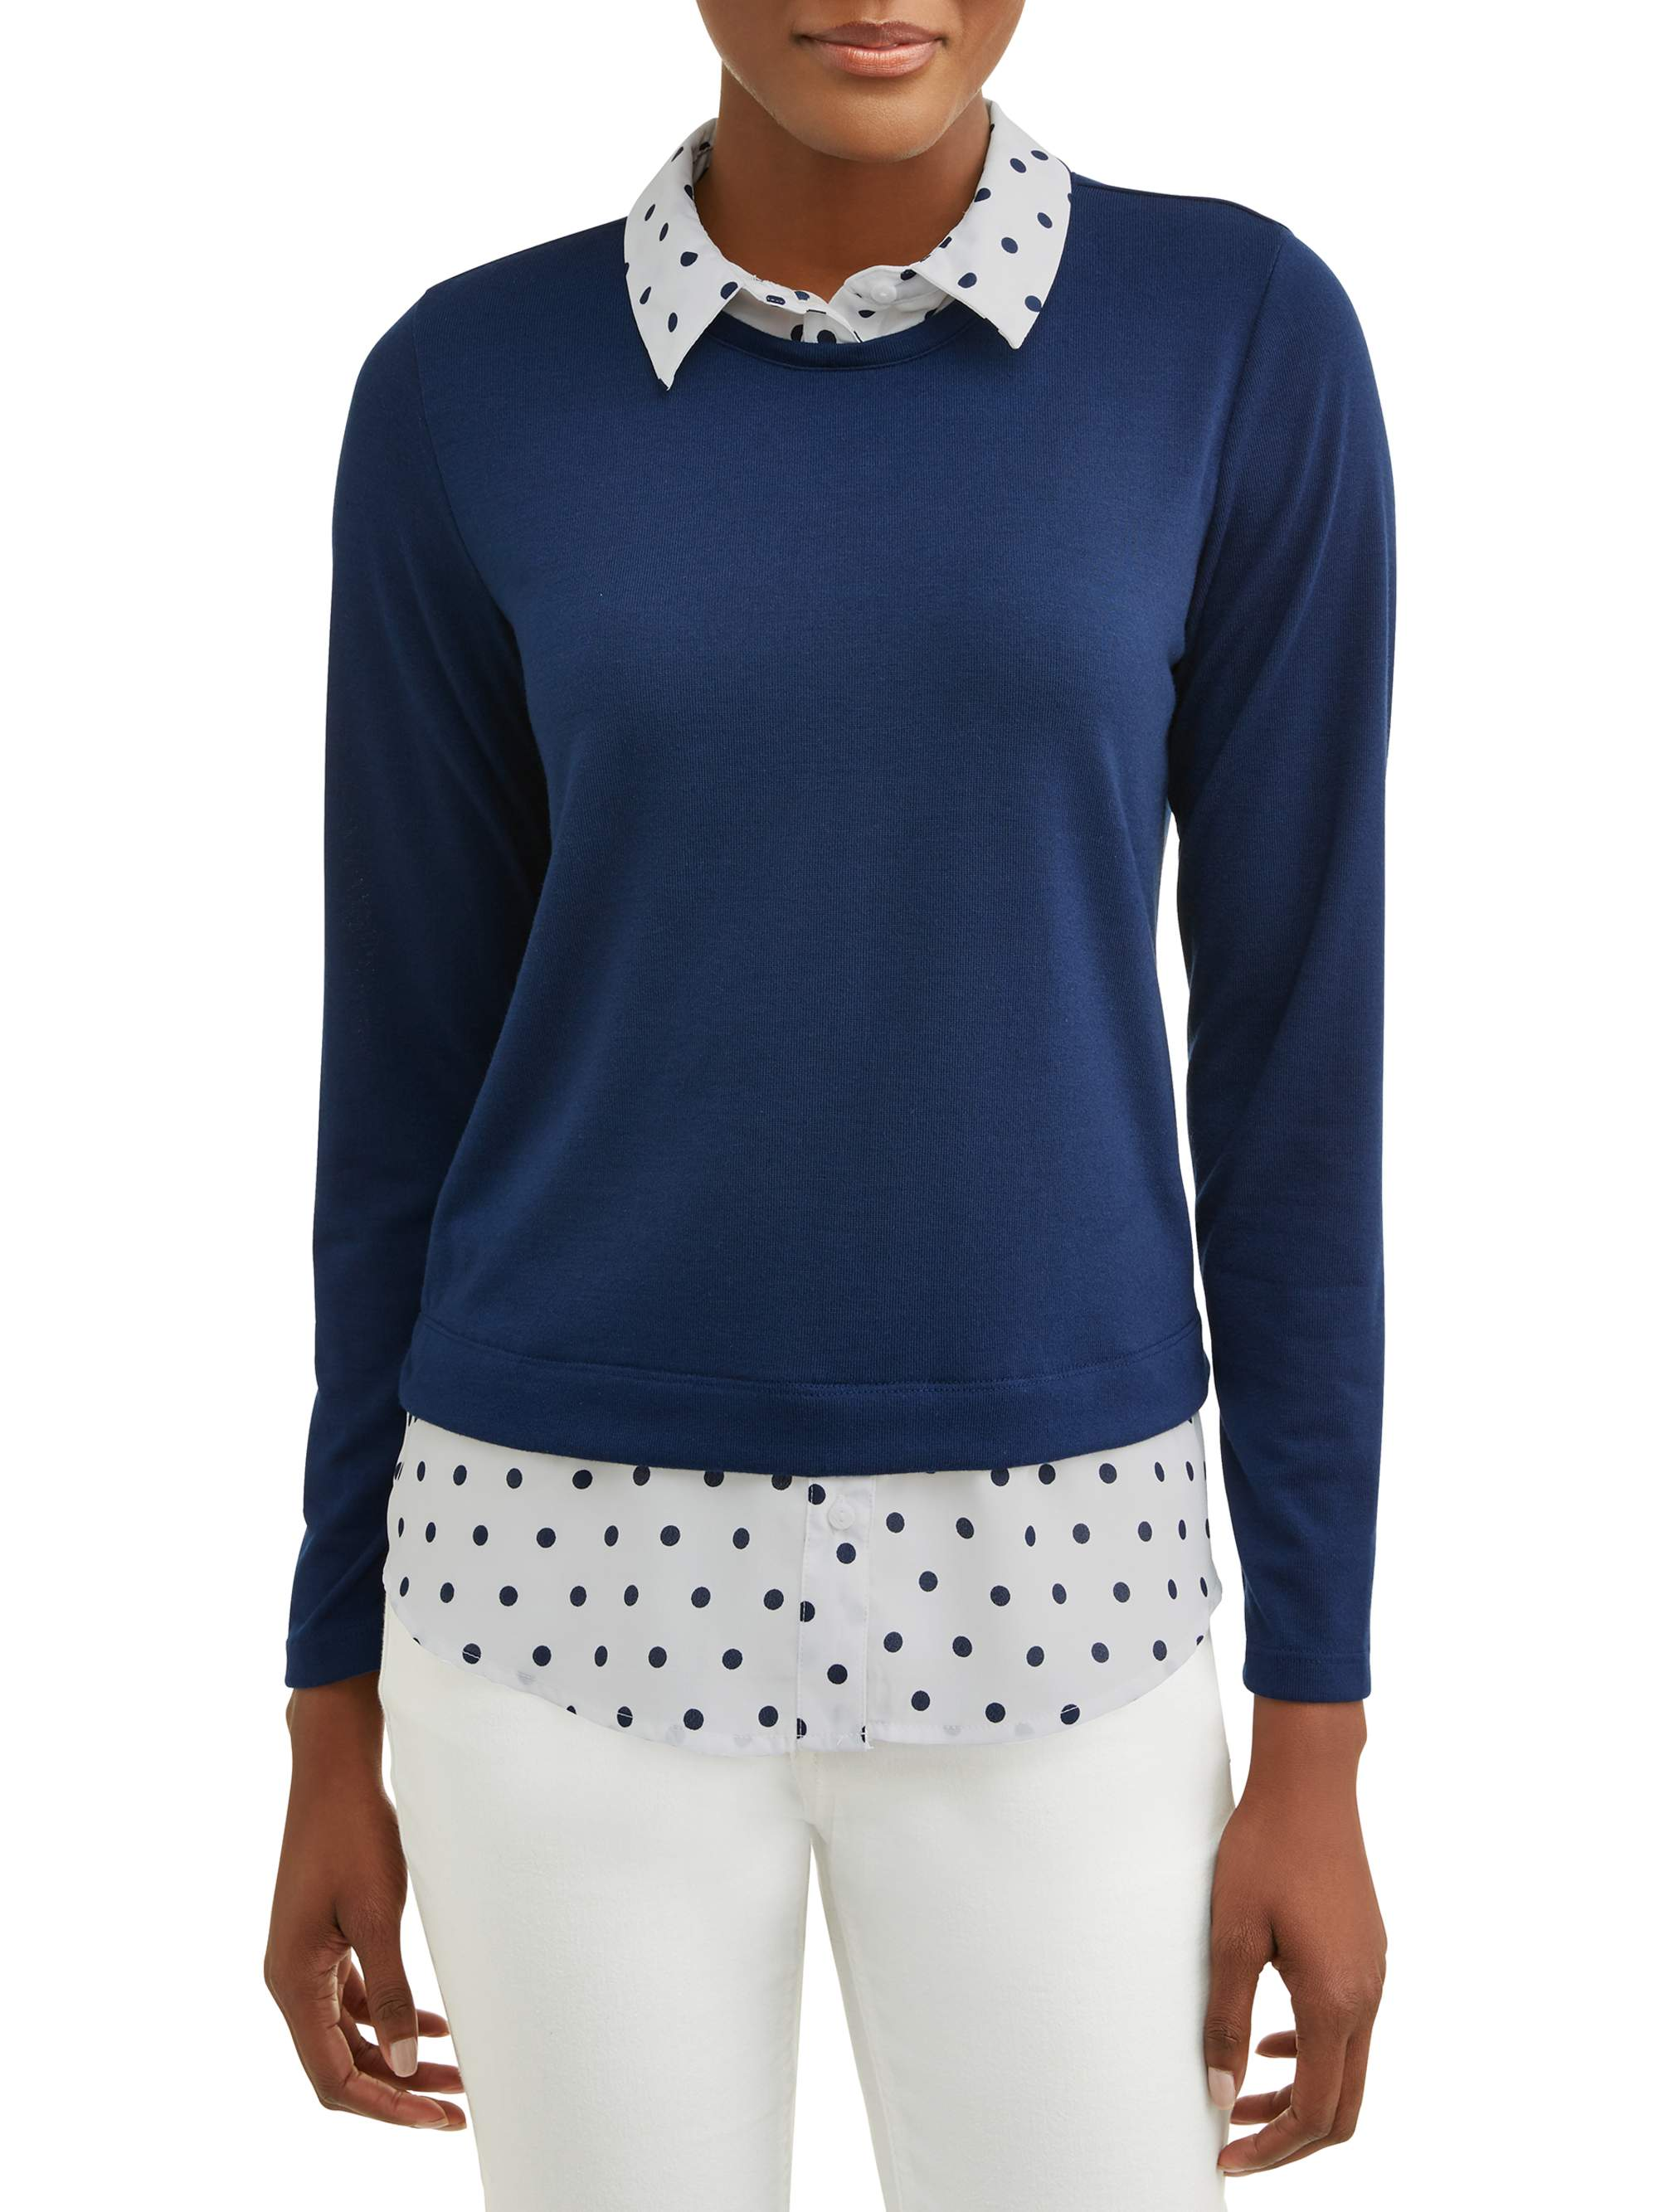 Women's 2fer Sweater with Built-In Collared Shirt